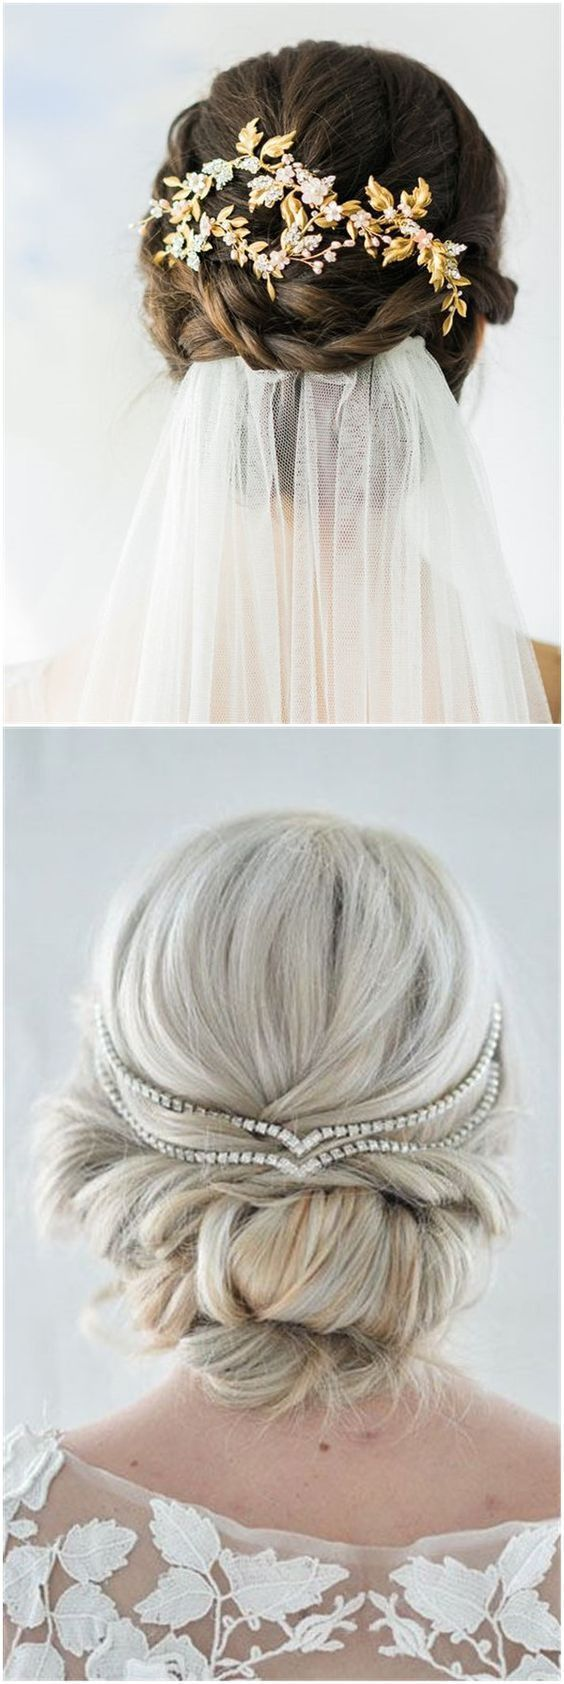 Pin by Penny Eves on White Wedding | Pinterest | Bridal hair, Hair ...